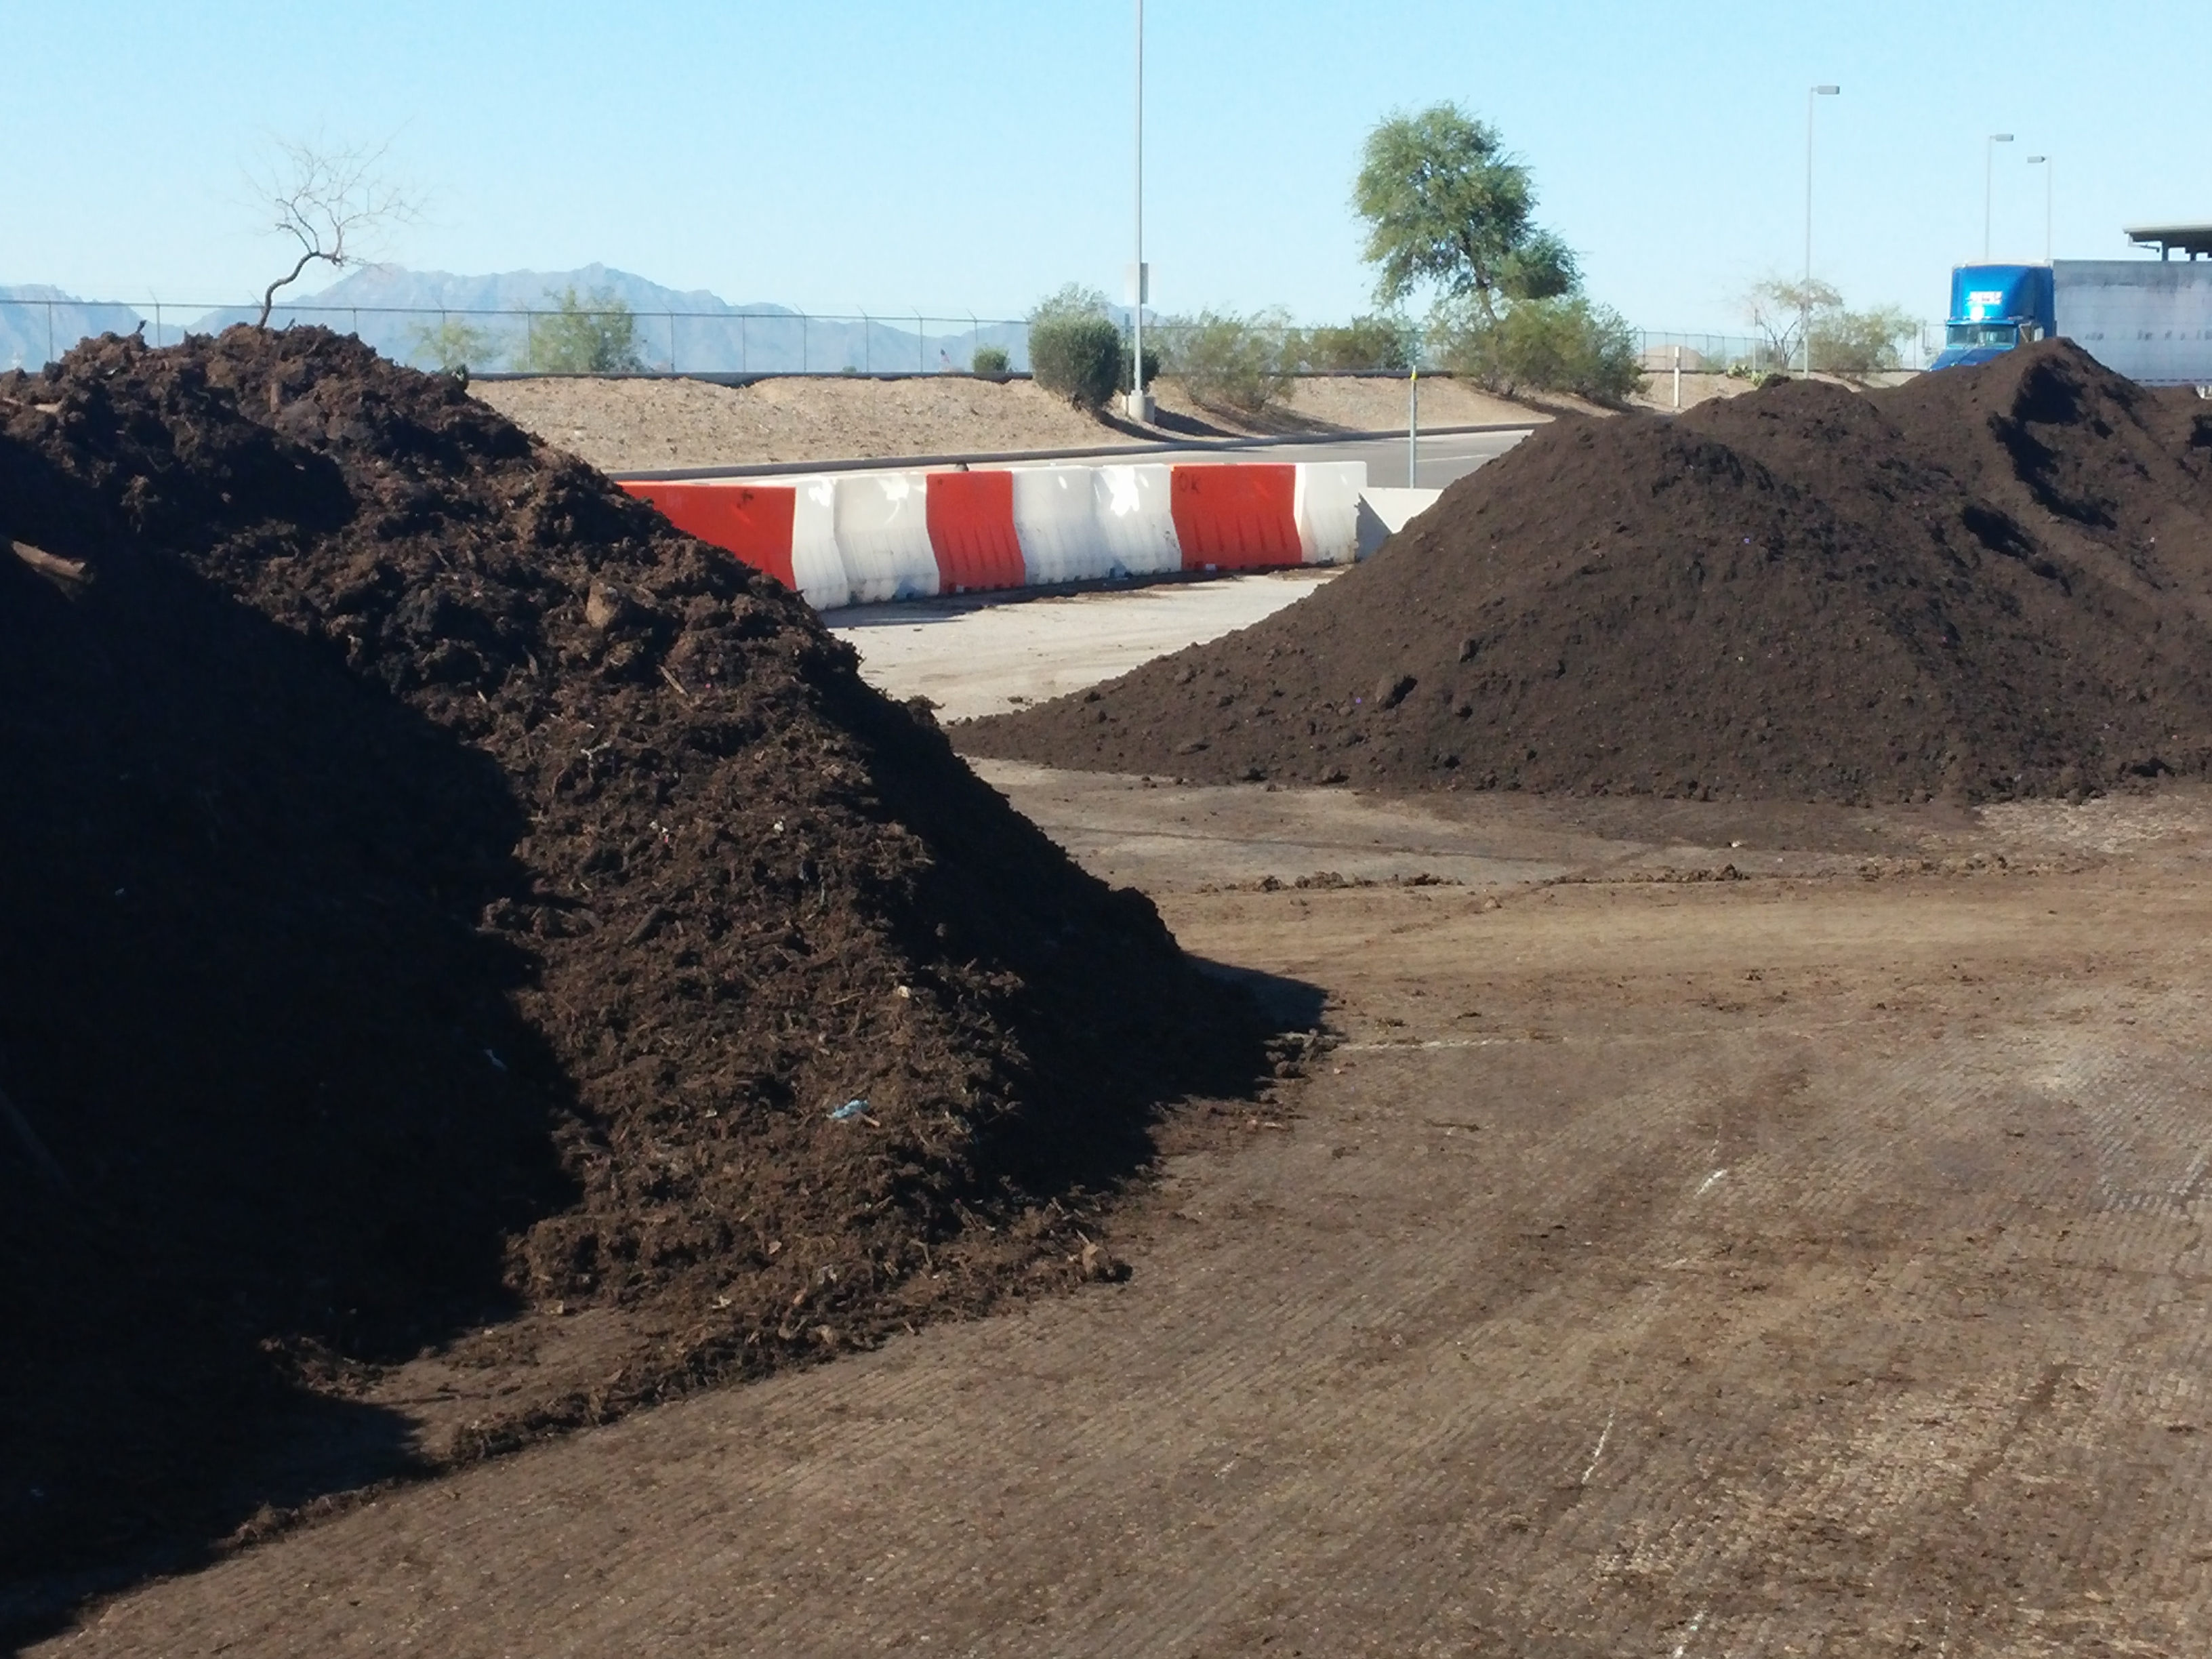 compost, food, waste, soil